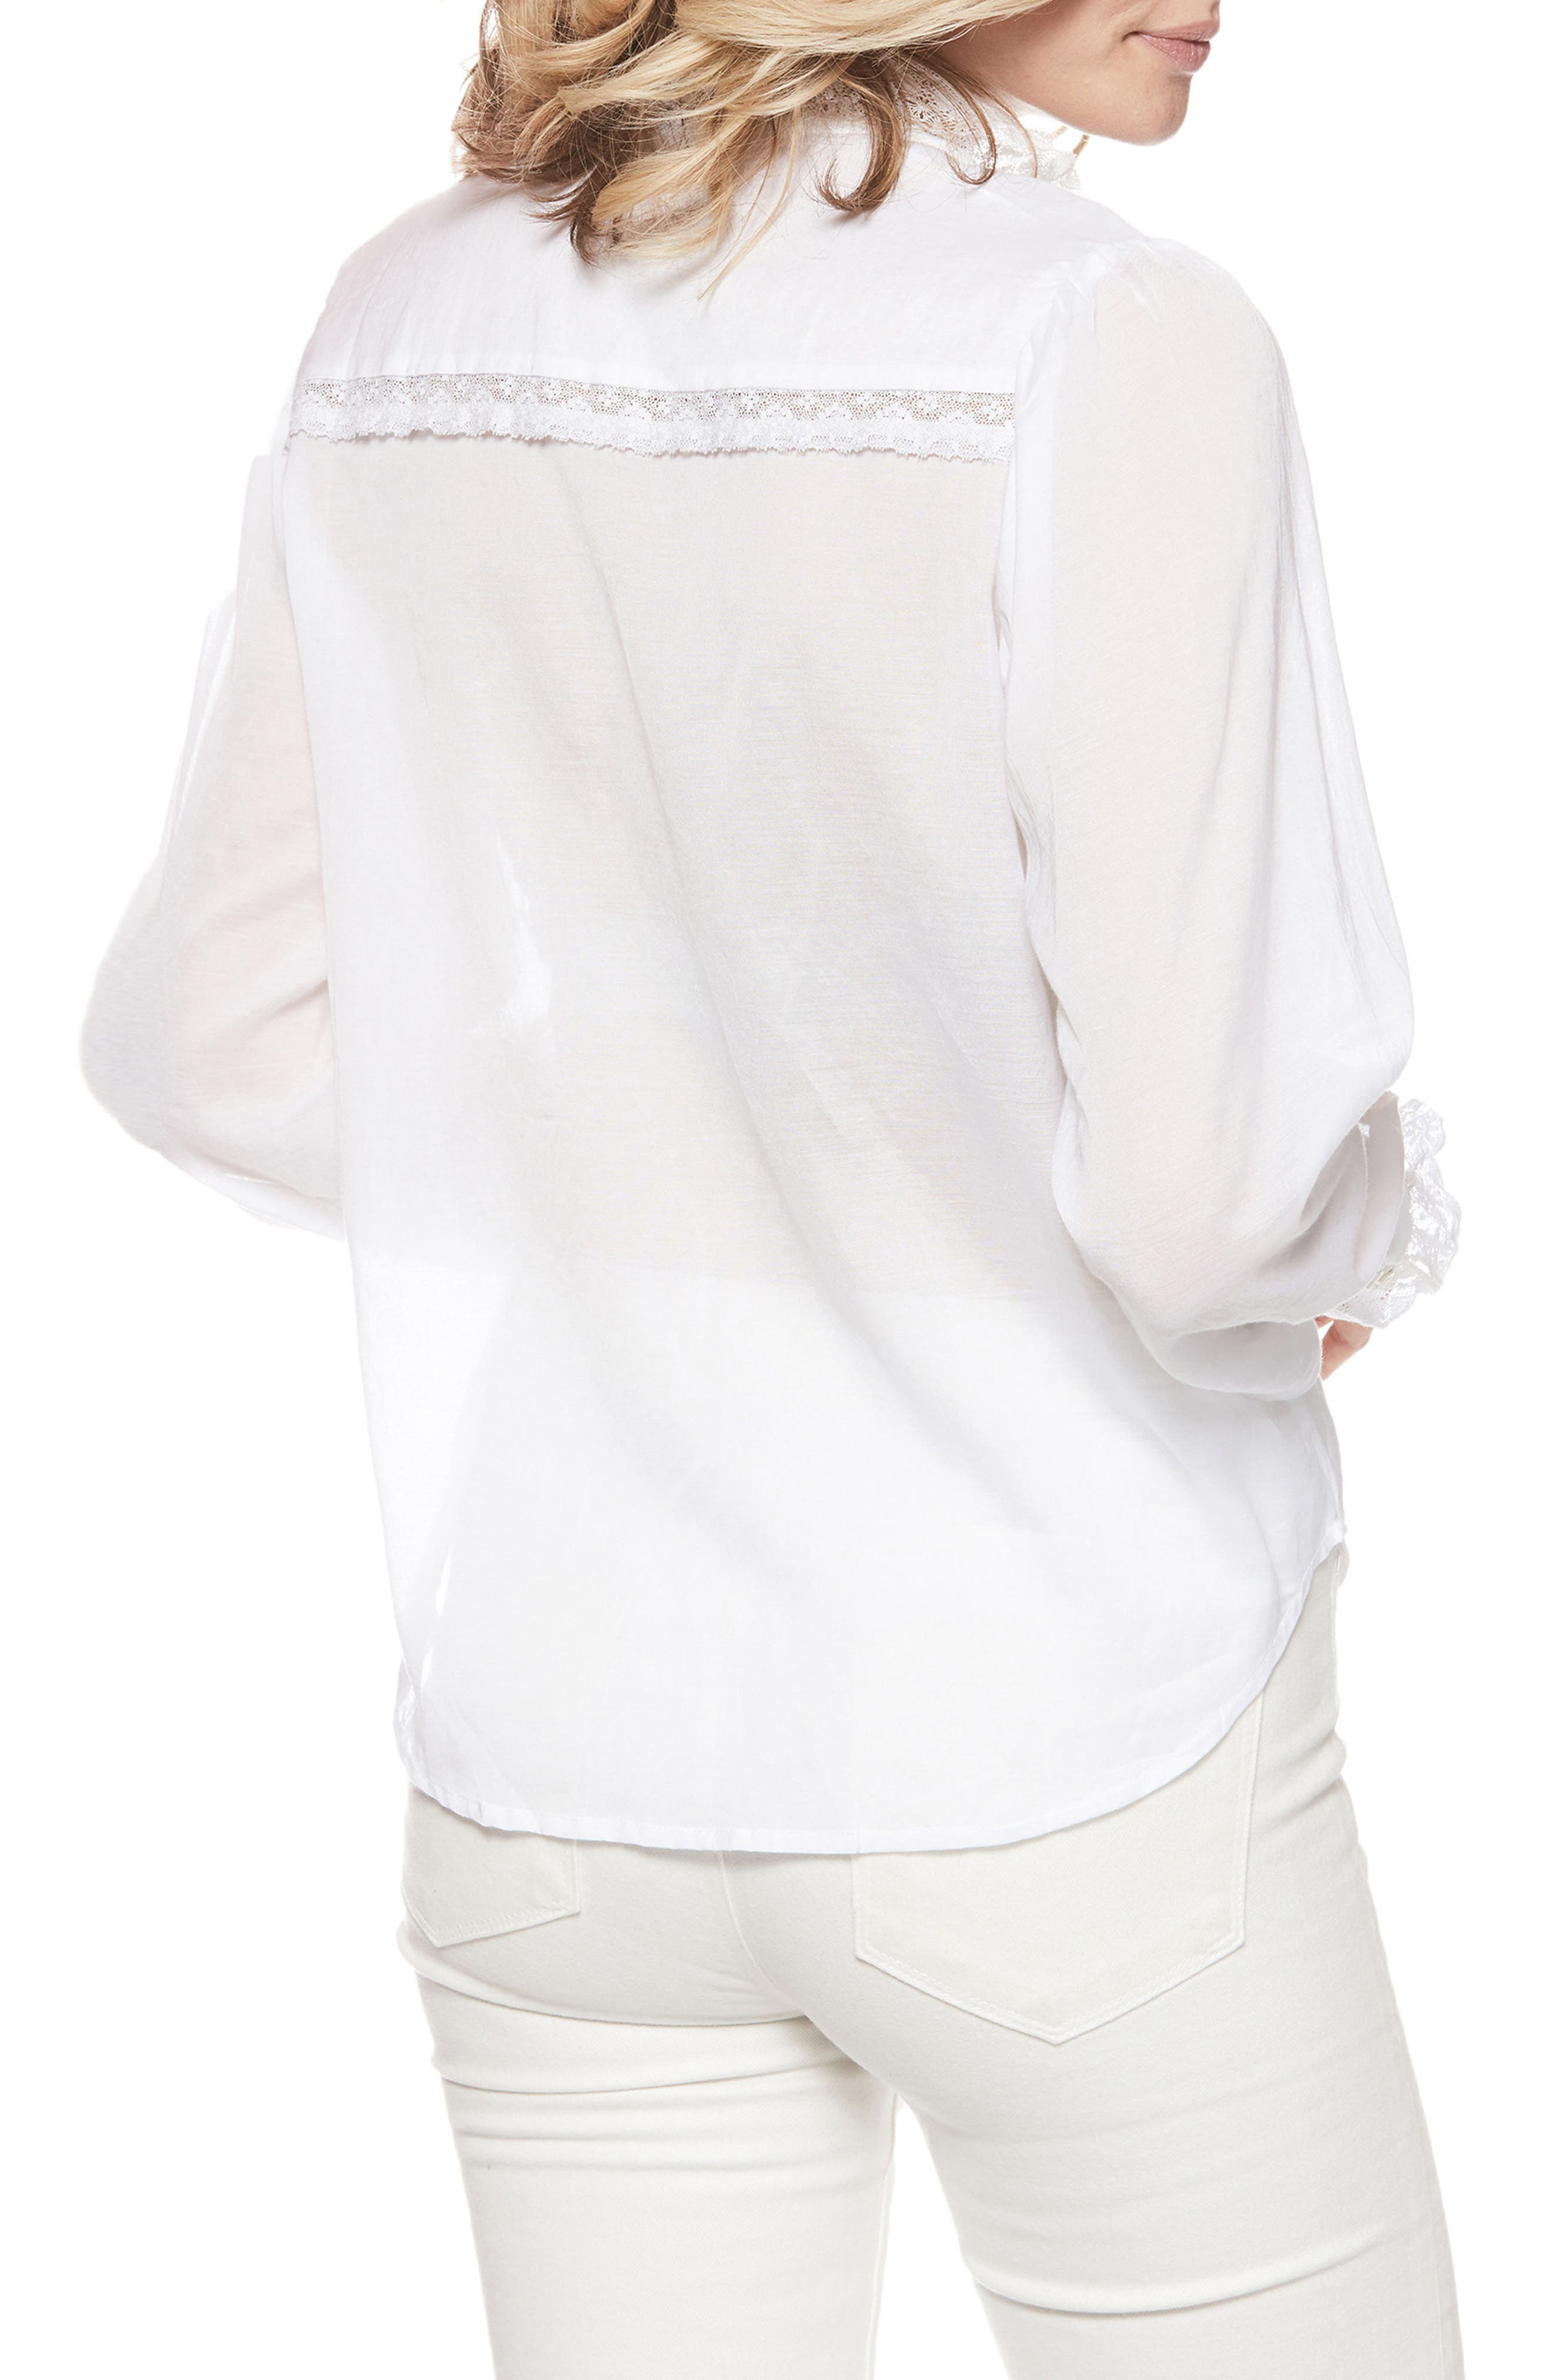 Alina Lace Trim Blouse,                             Alternate thumbnail 2, color,                             100